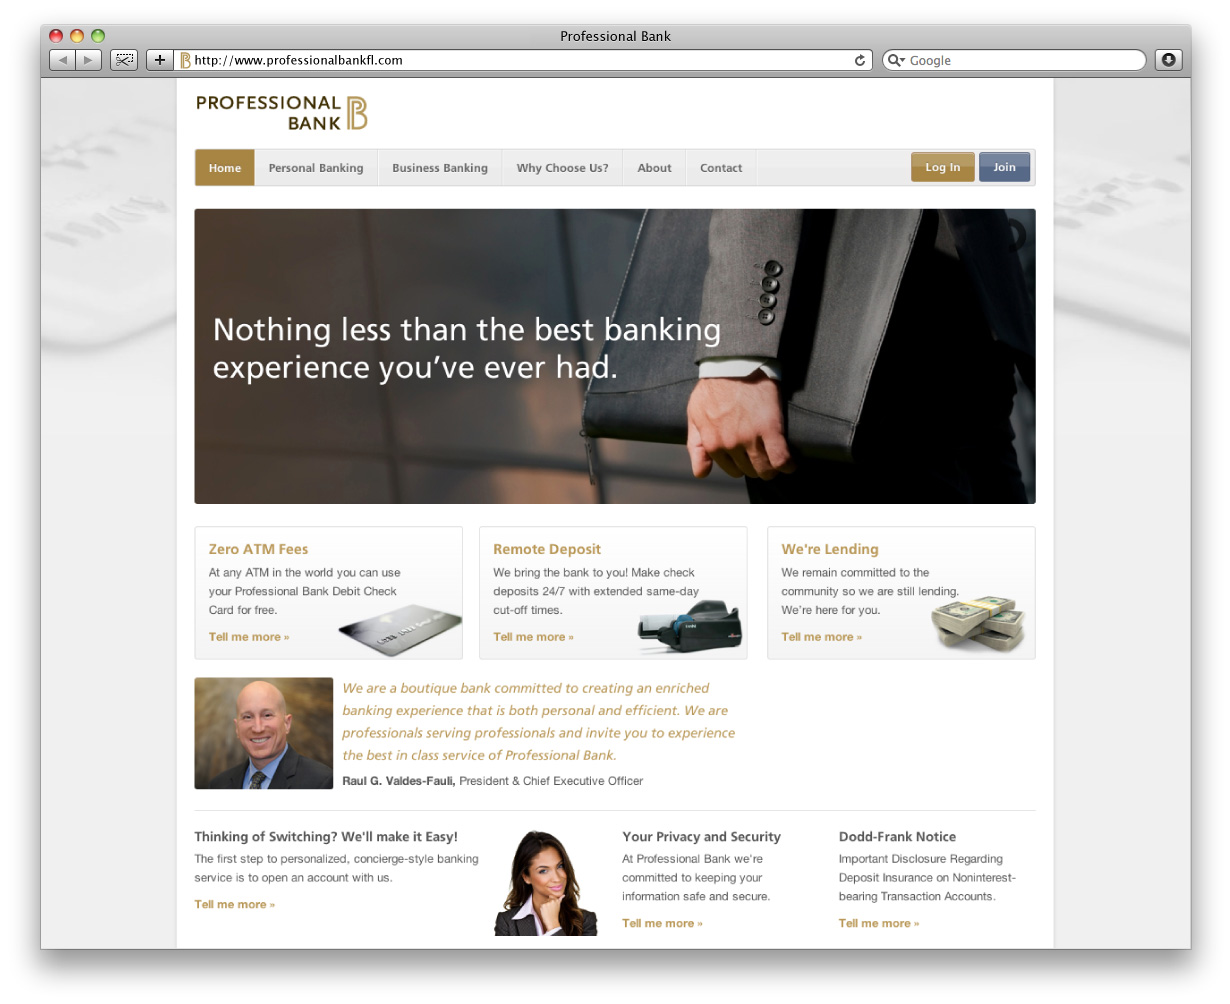 Professional Bank Home Page